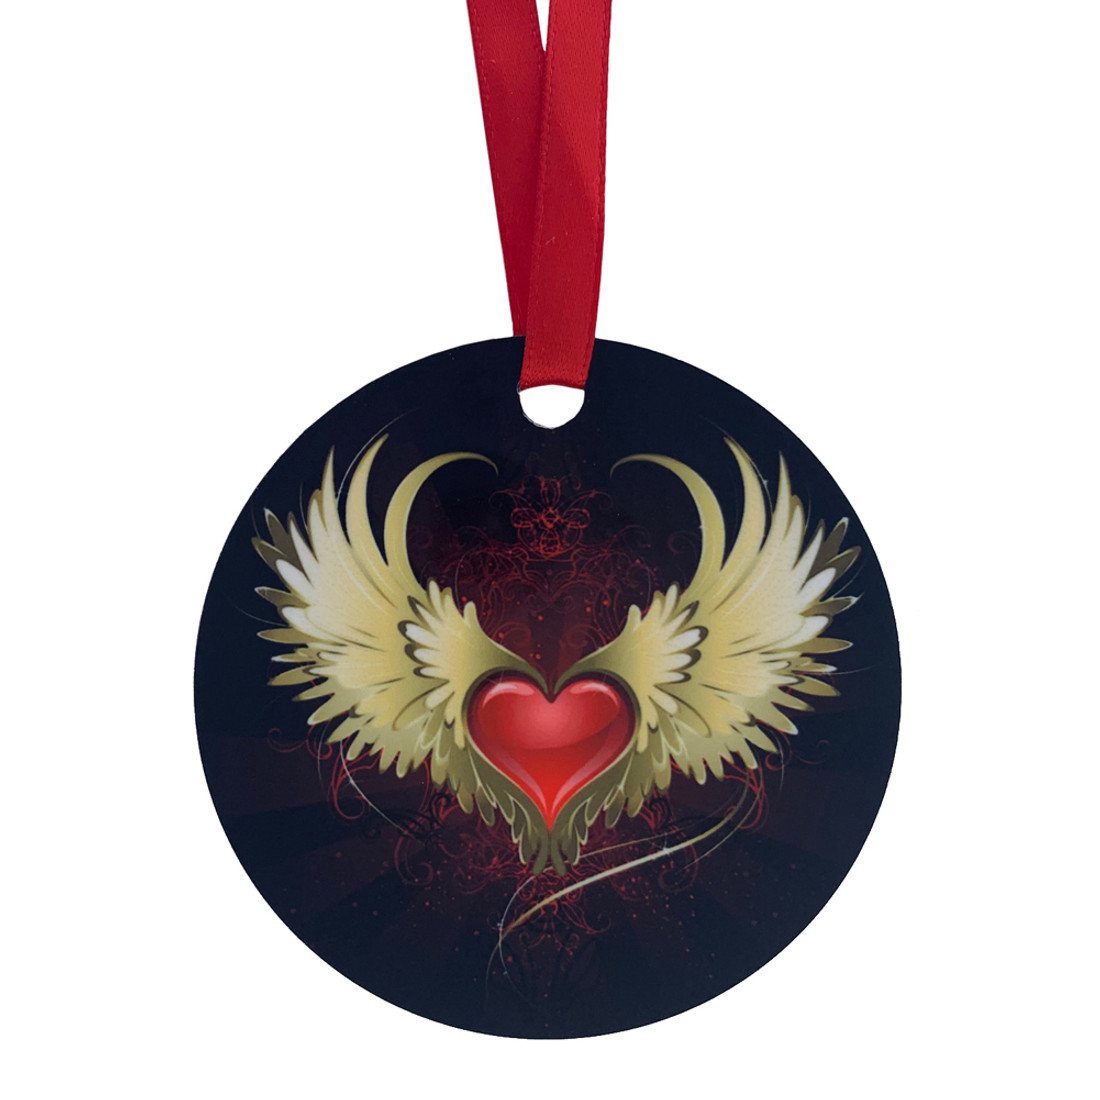 Heart and Wings Decorative Hanging Ornament